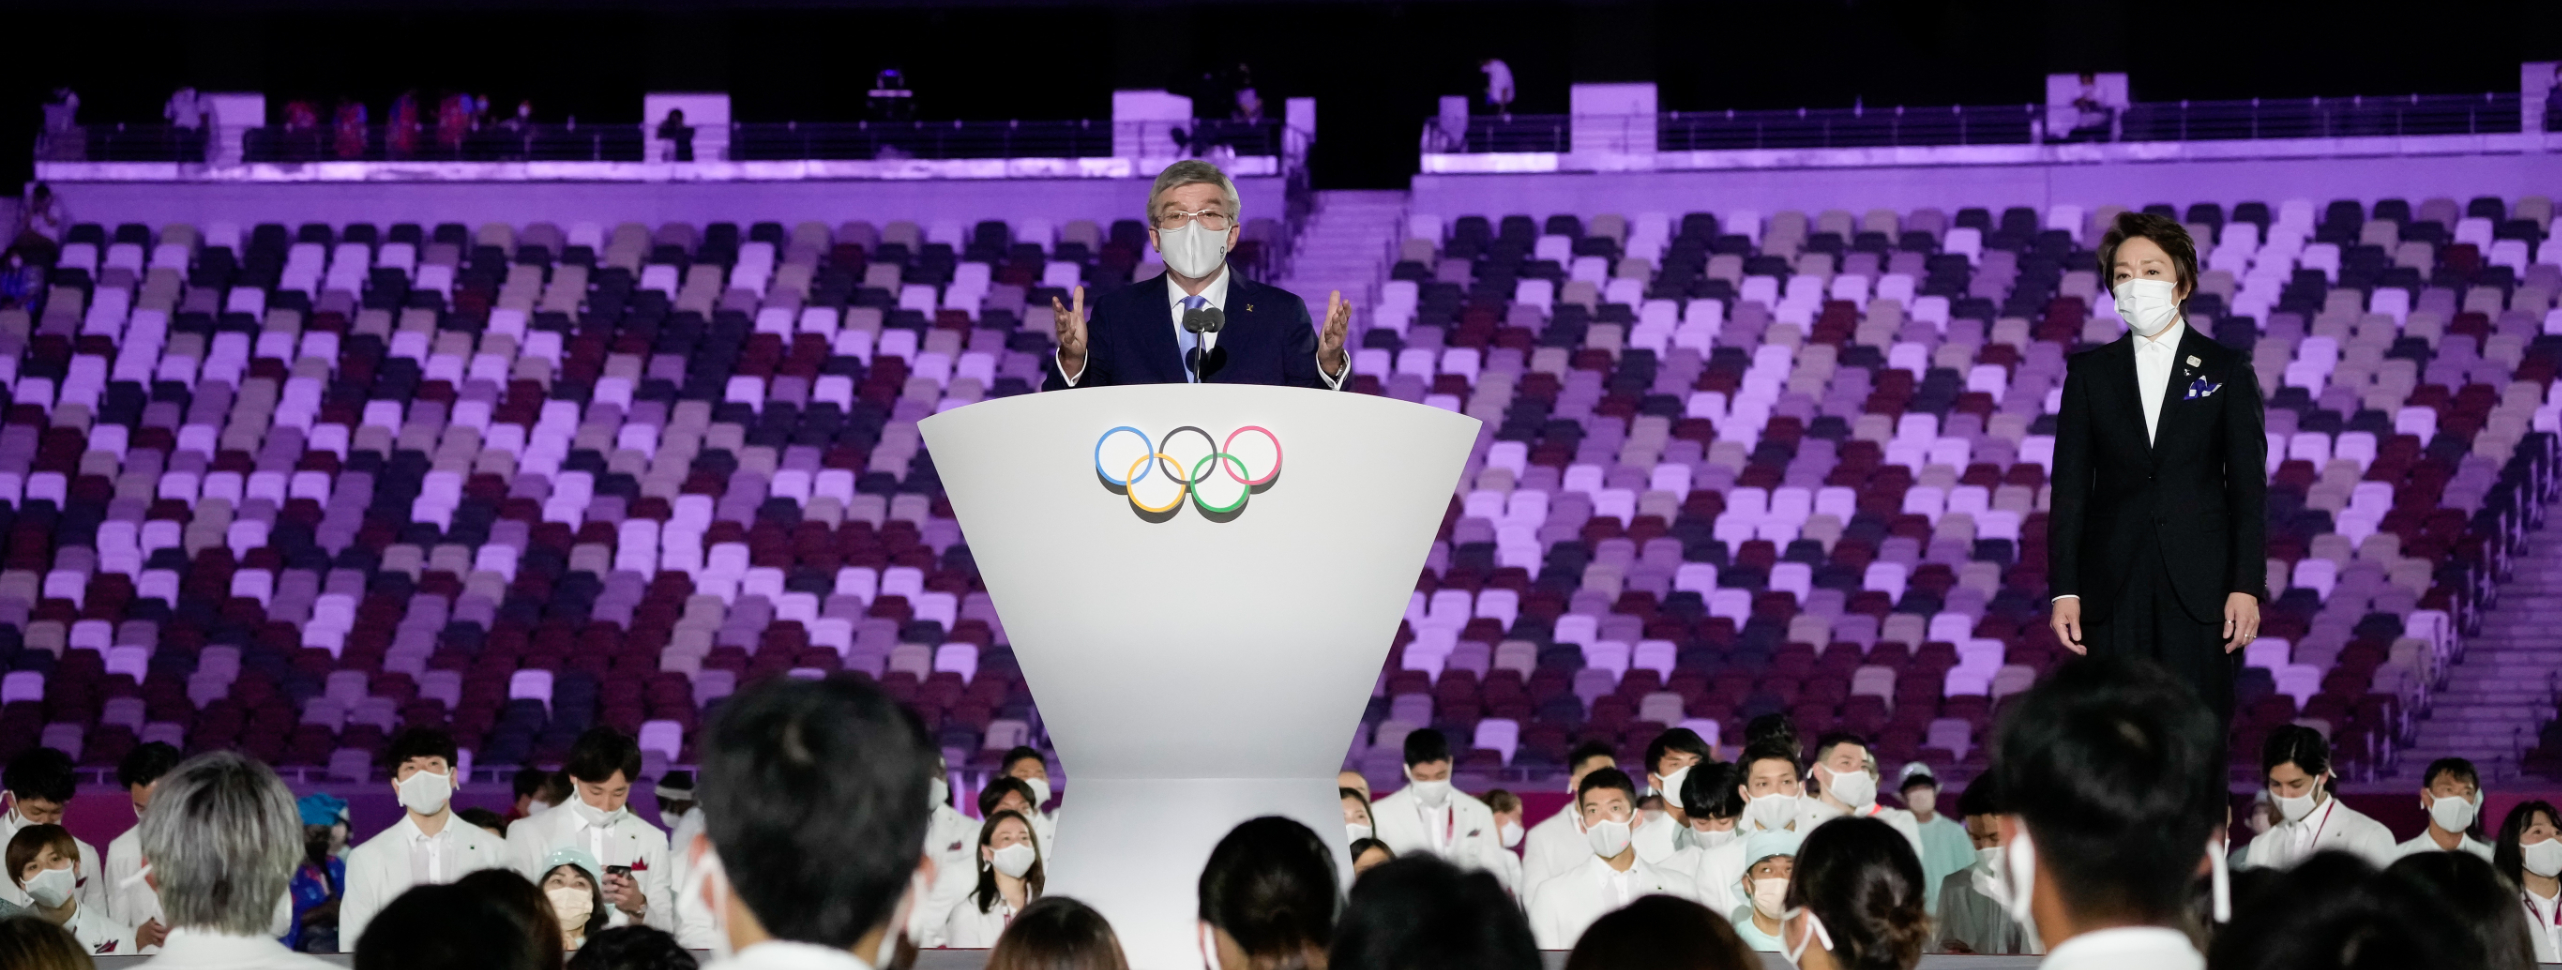 PROMINENT ROLE FOR SPORT CLIMBING DURING TOKYO 2020 OPENING CEREMONY